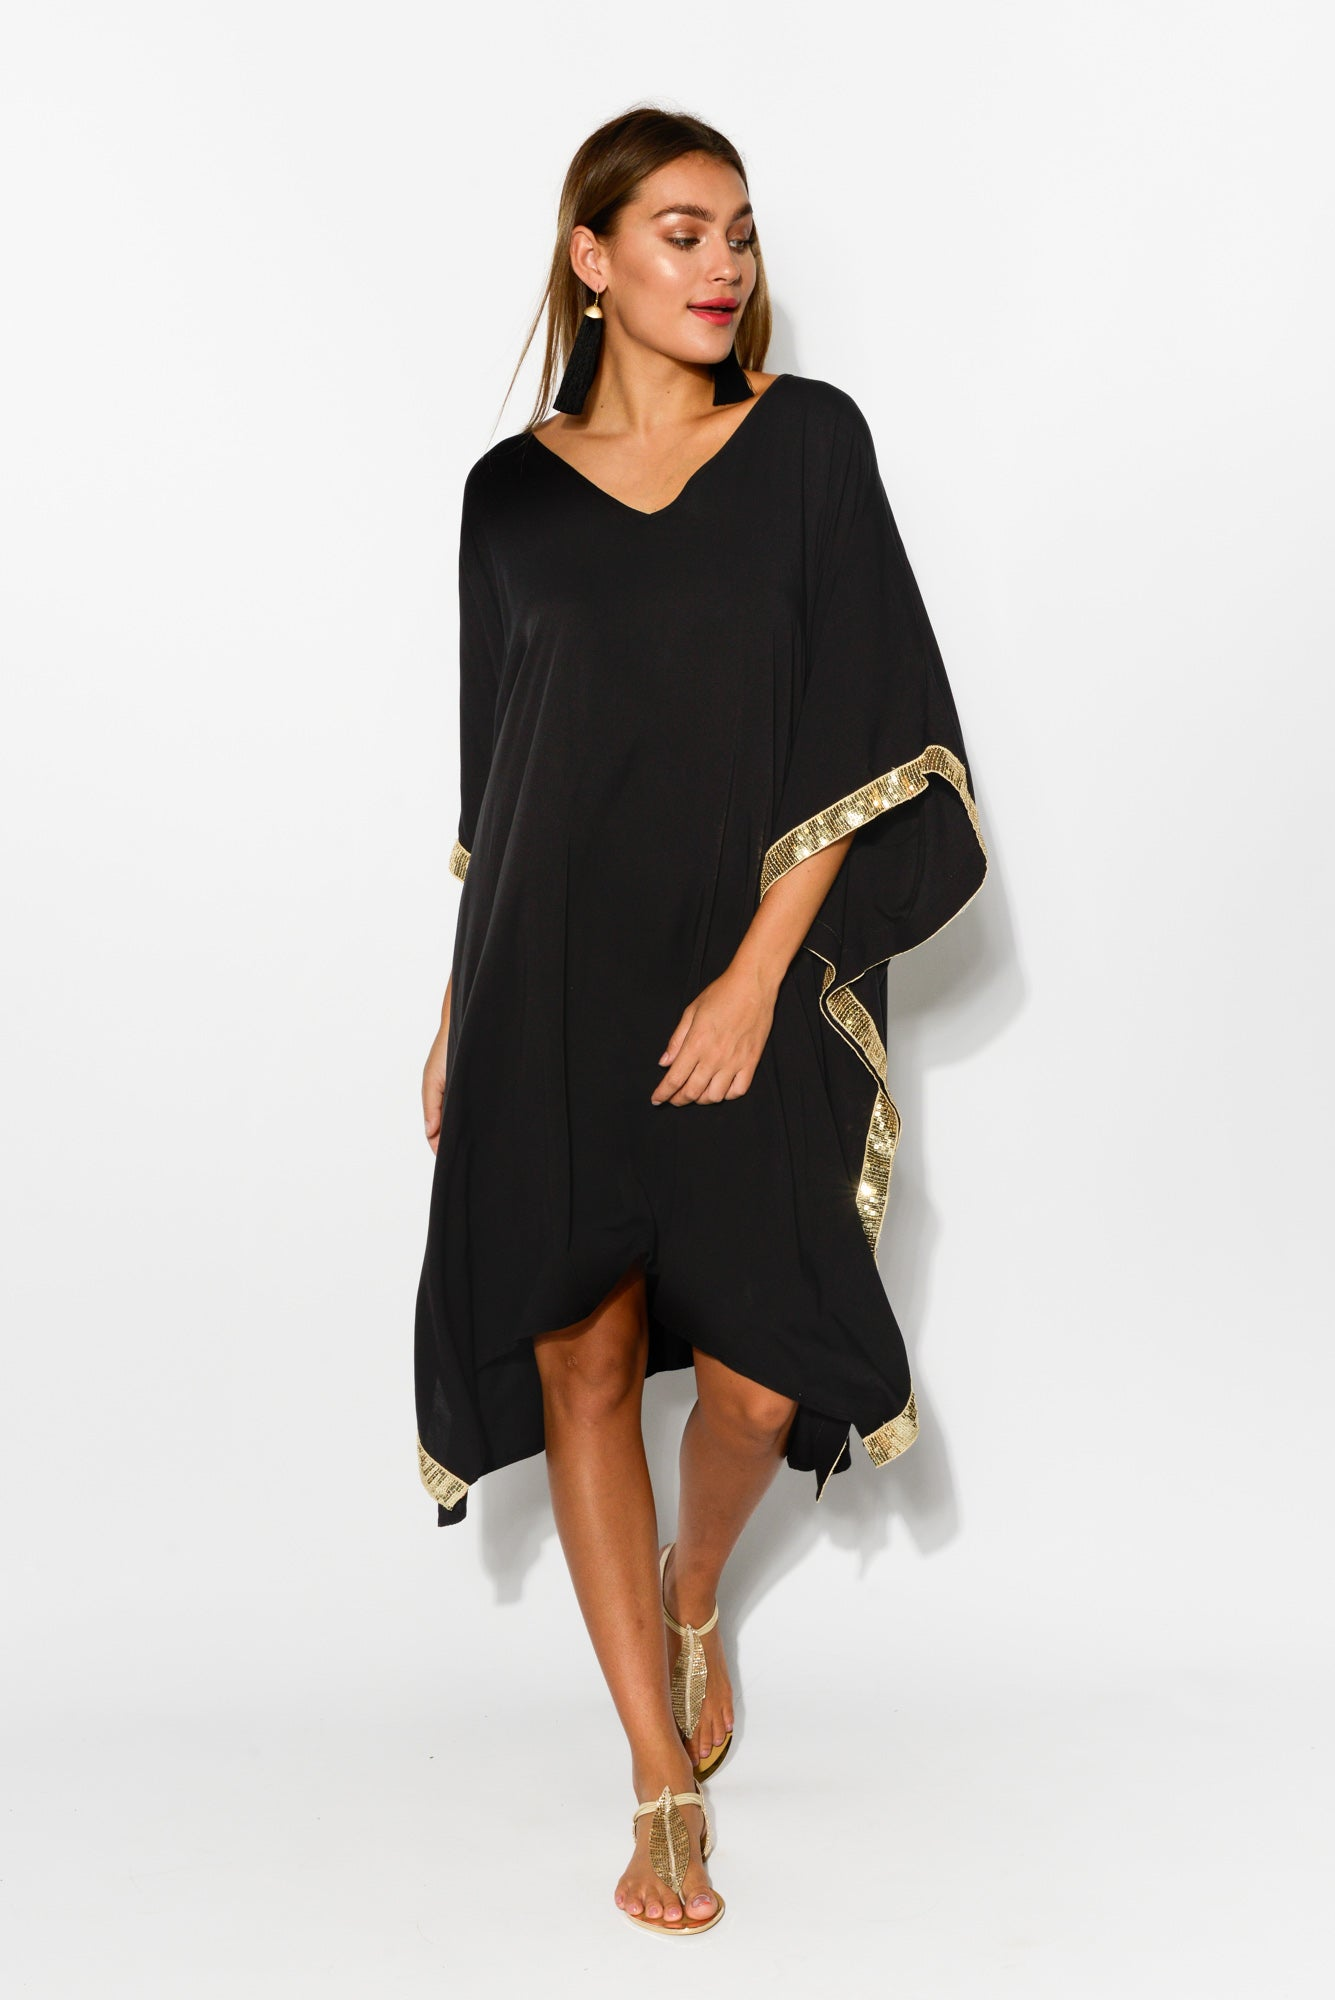 Evelyn Black Sequin Kaftan Dress